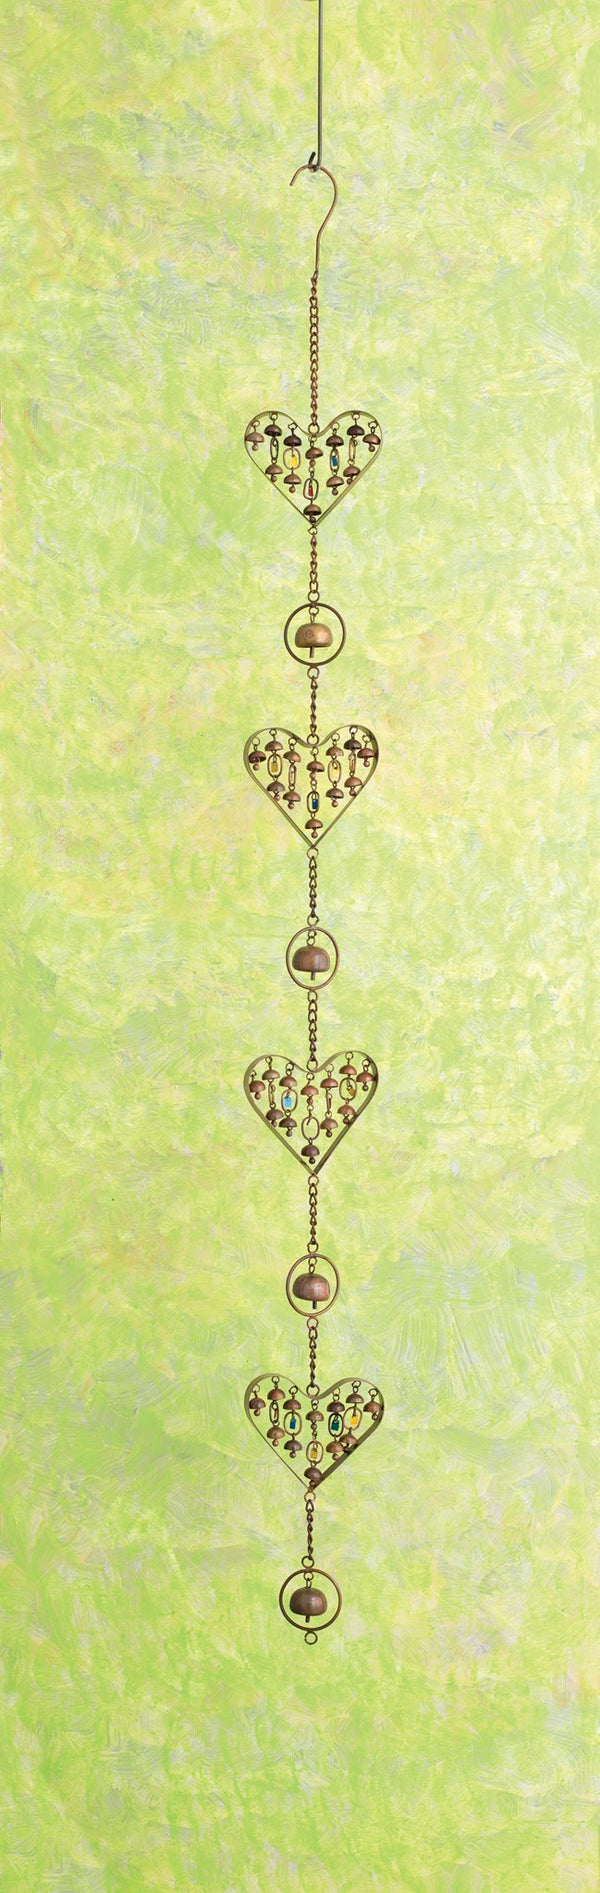 Heart Multi Dangle Ornament